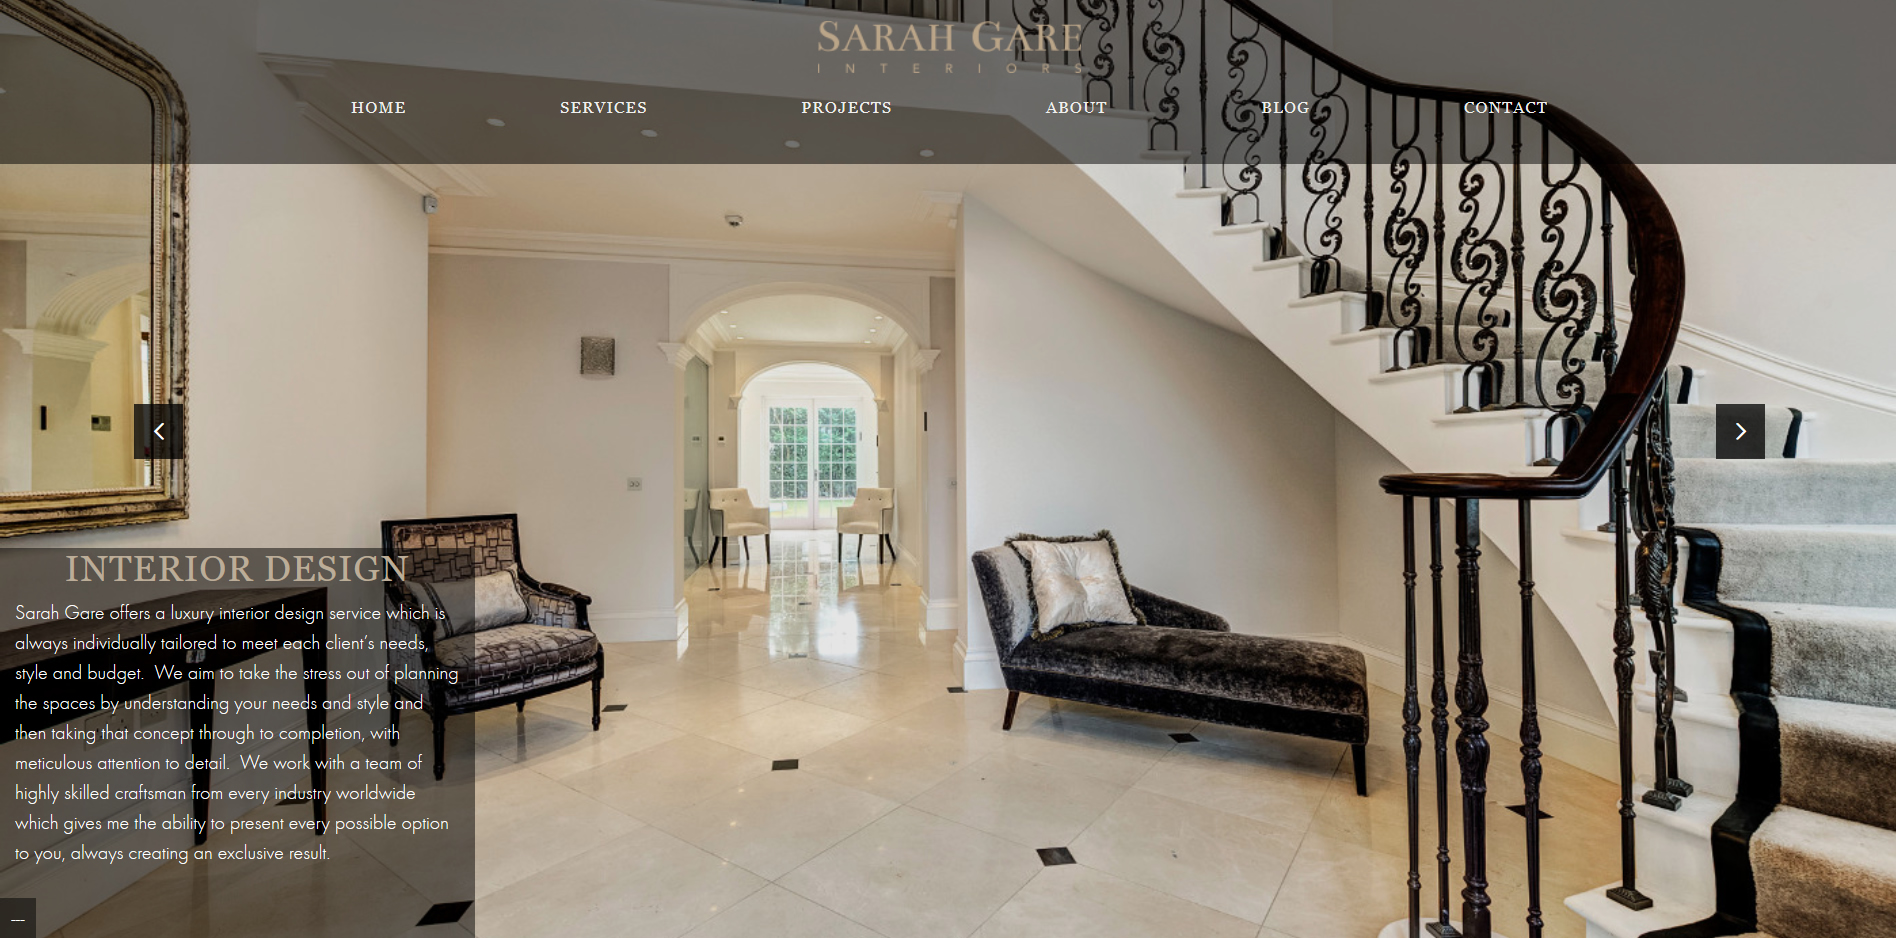 Sarah Gare interiors Services Page